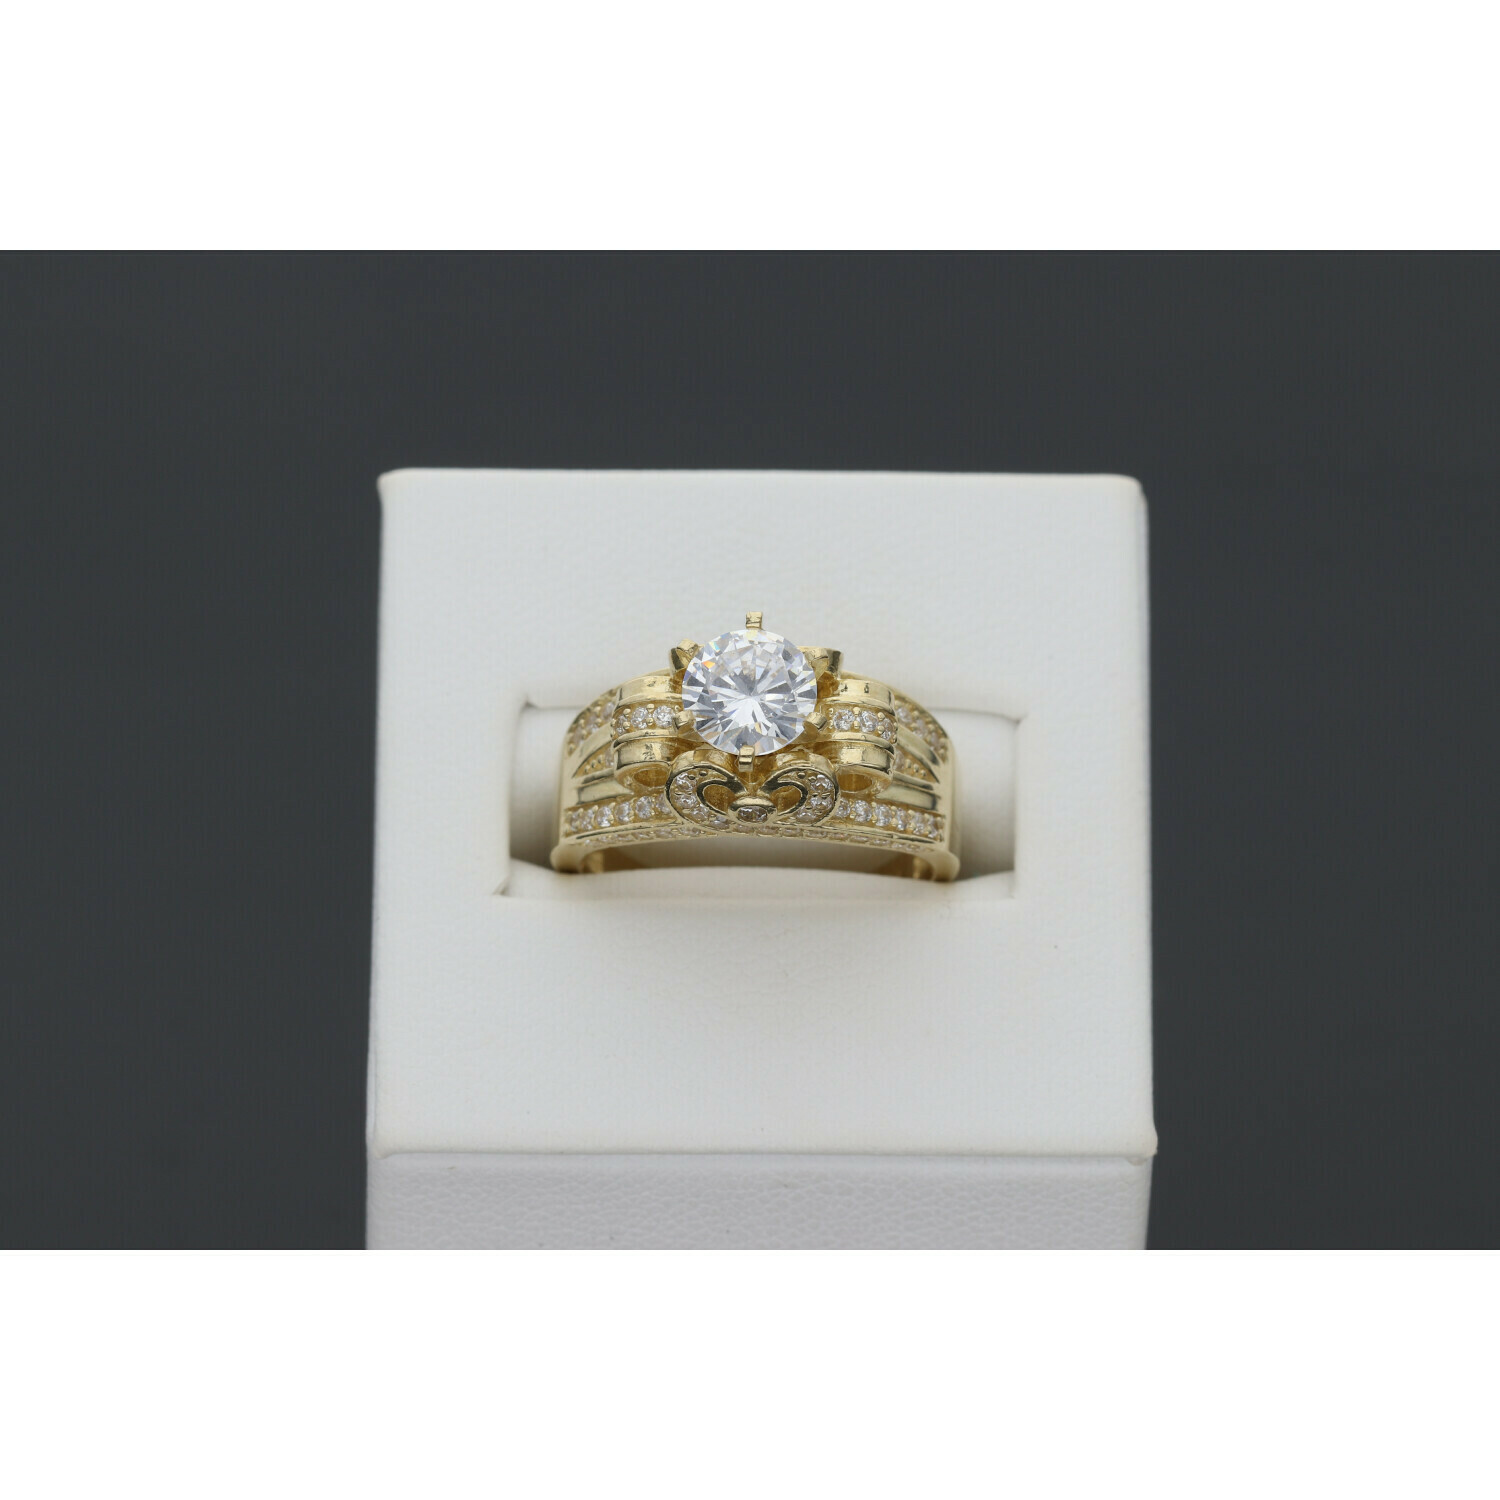 10 karat Gold & Zirconium Princess Ring